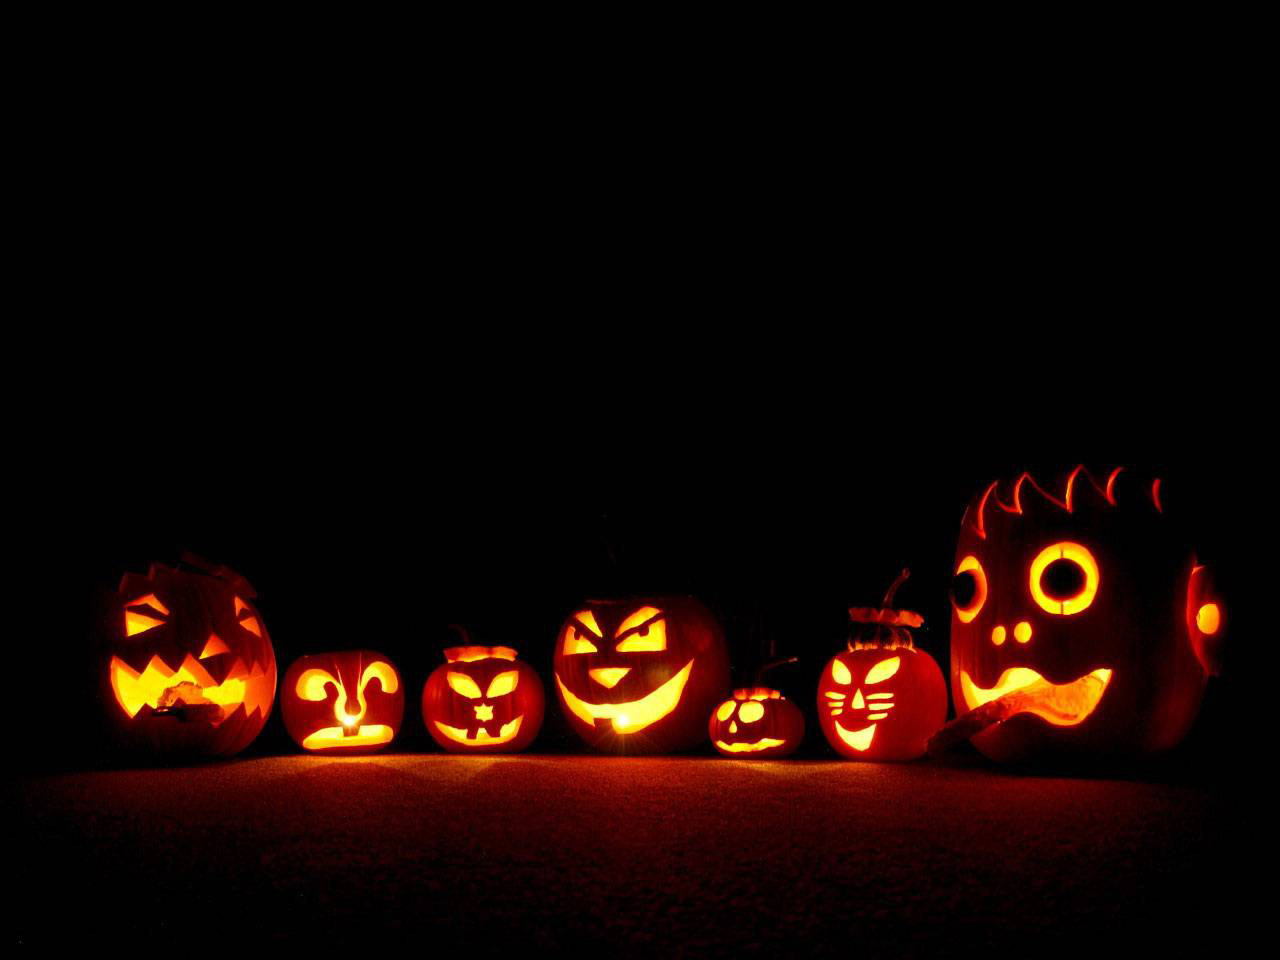 Desktop Halloween Wallpaper - WallpaperSafari